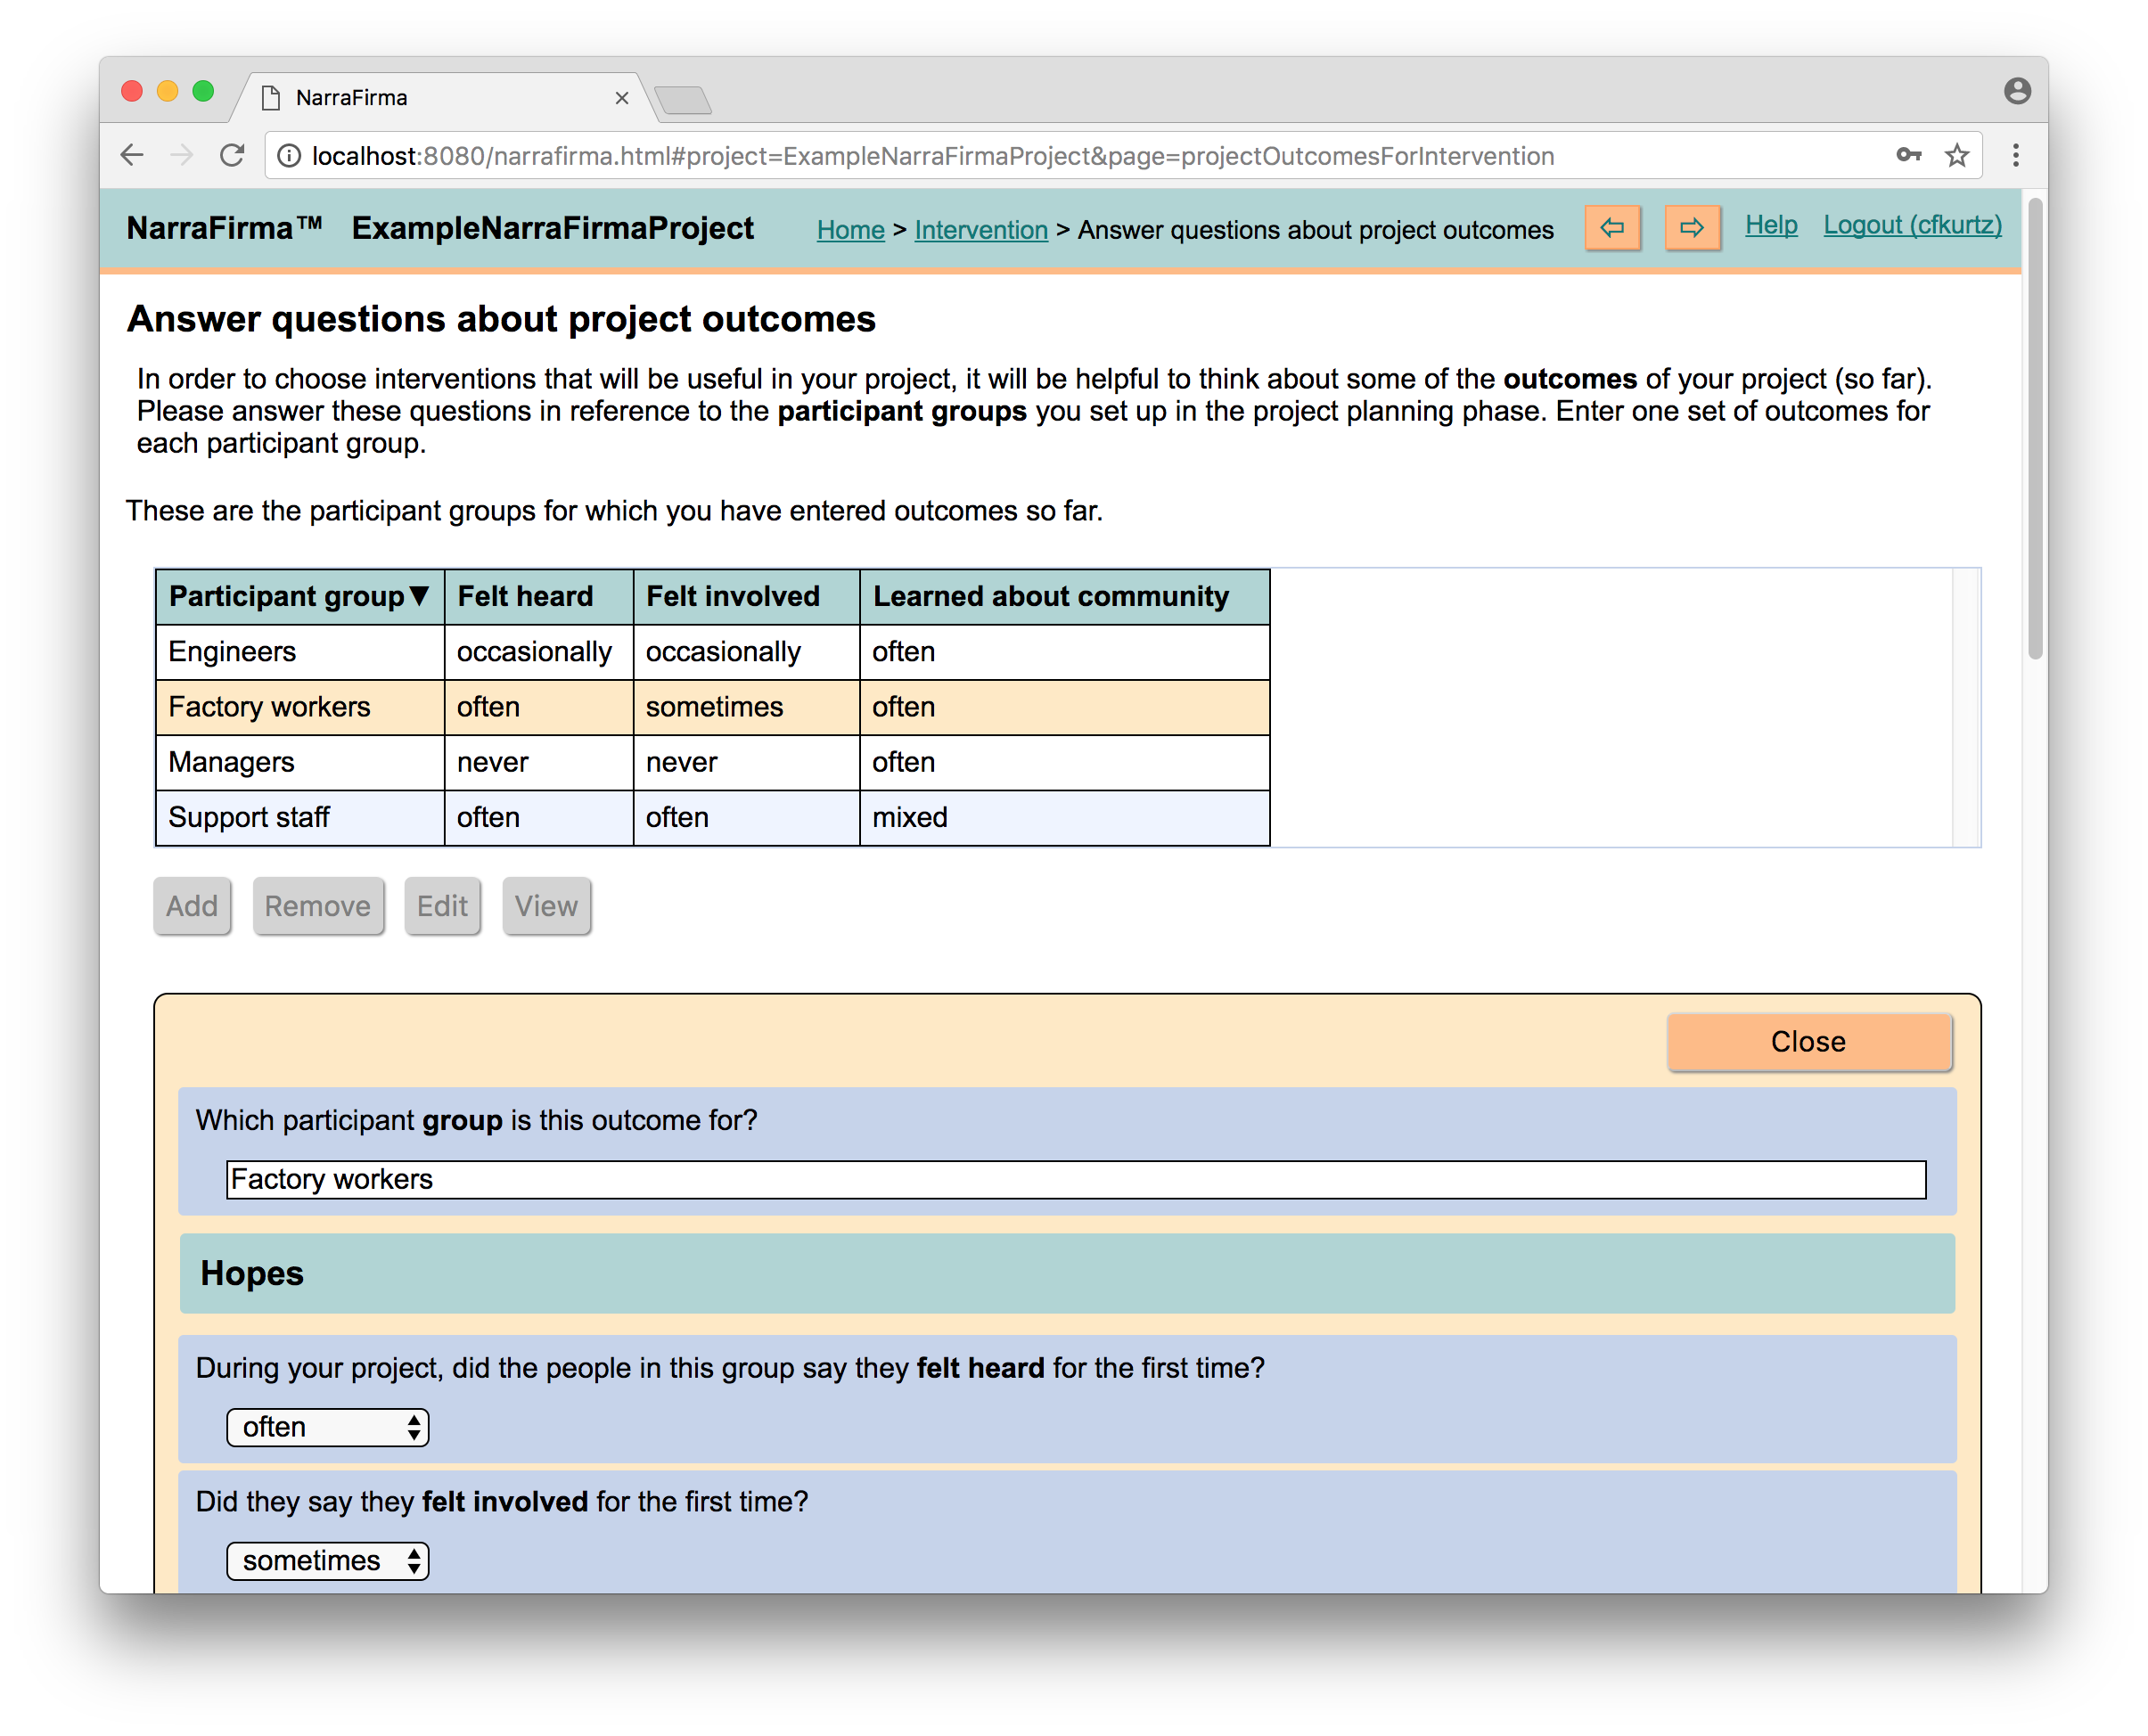 <p>Here the NarraFirma user is ansewring questions about the outcomes of the project for each participant group. Those outcomes will determine recommendations for interventions.</p>